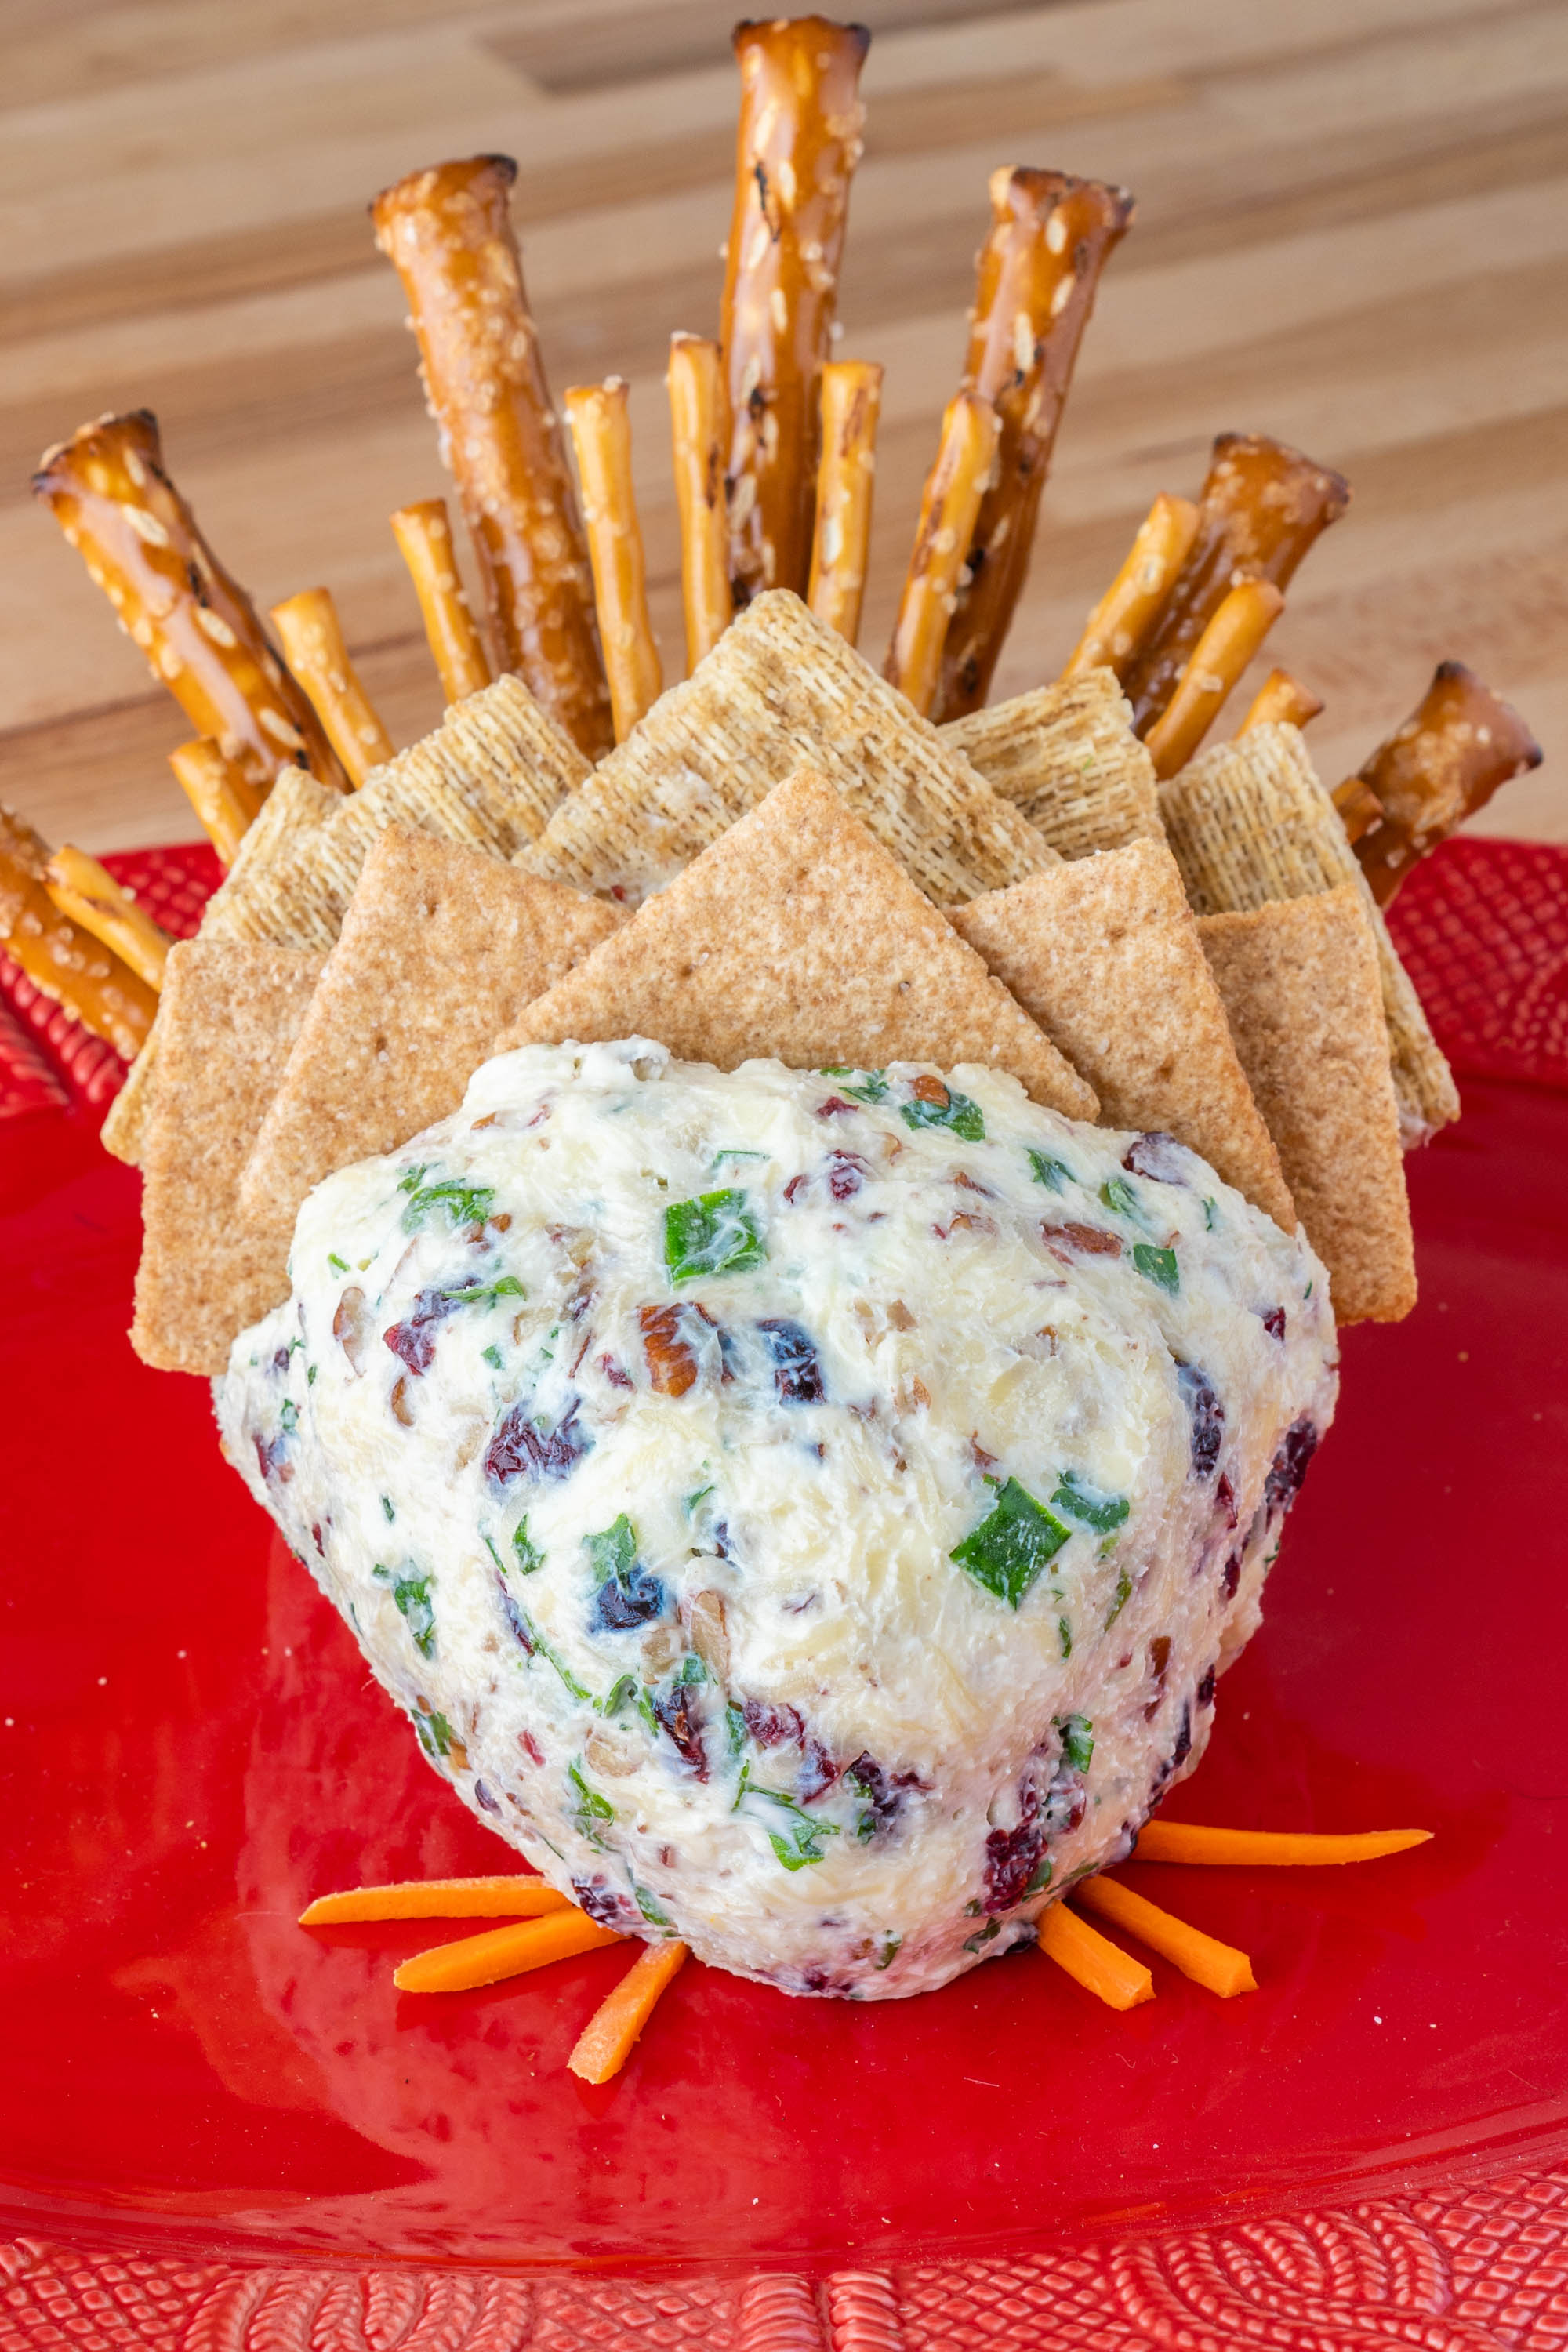 How to Make a Turkey Cheese Ball Thanksgiving Appetizer